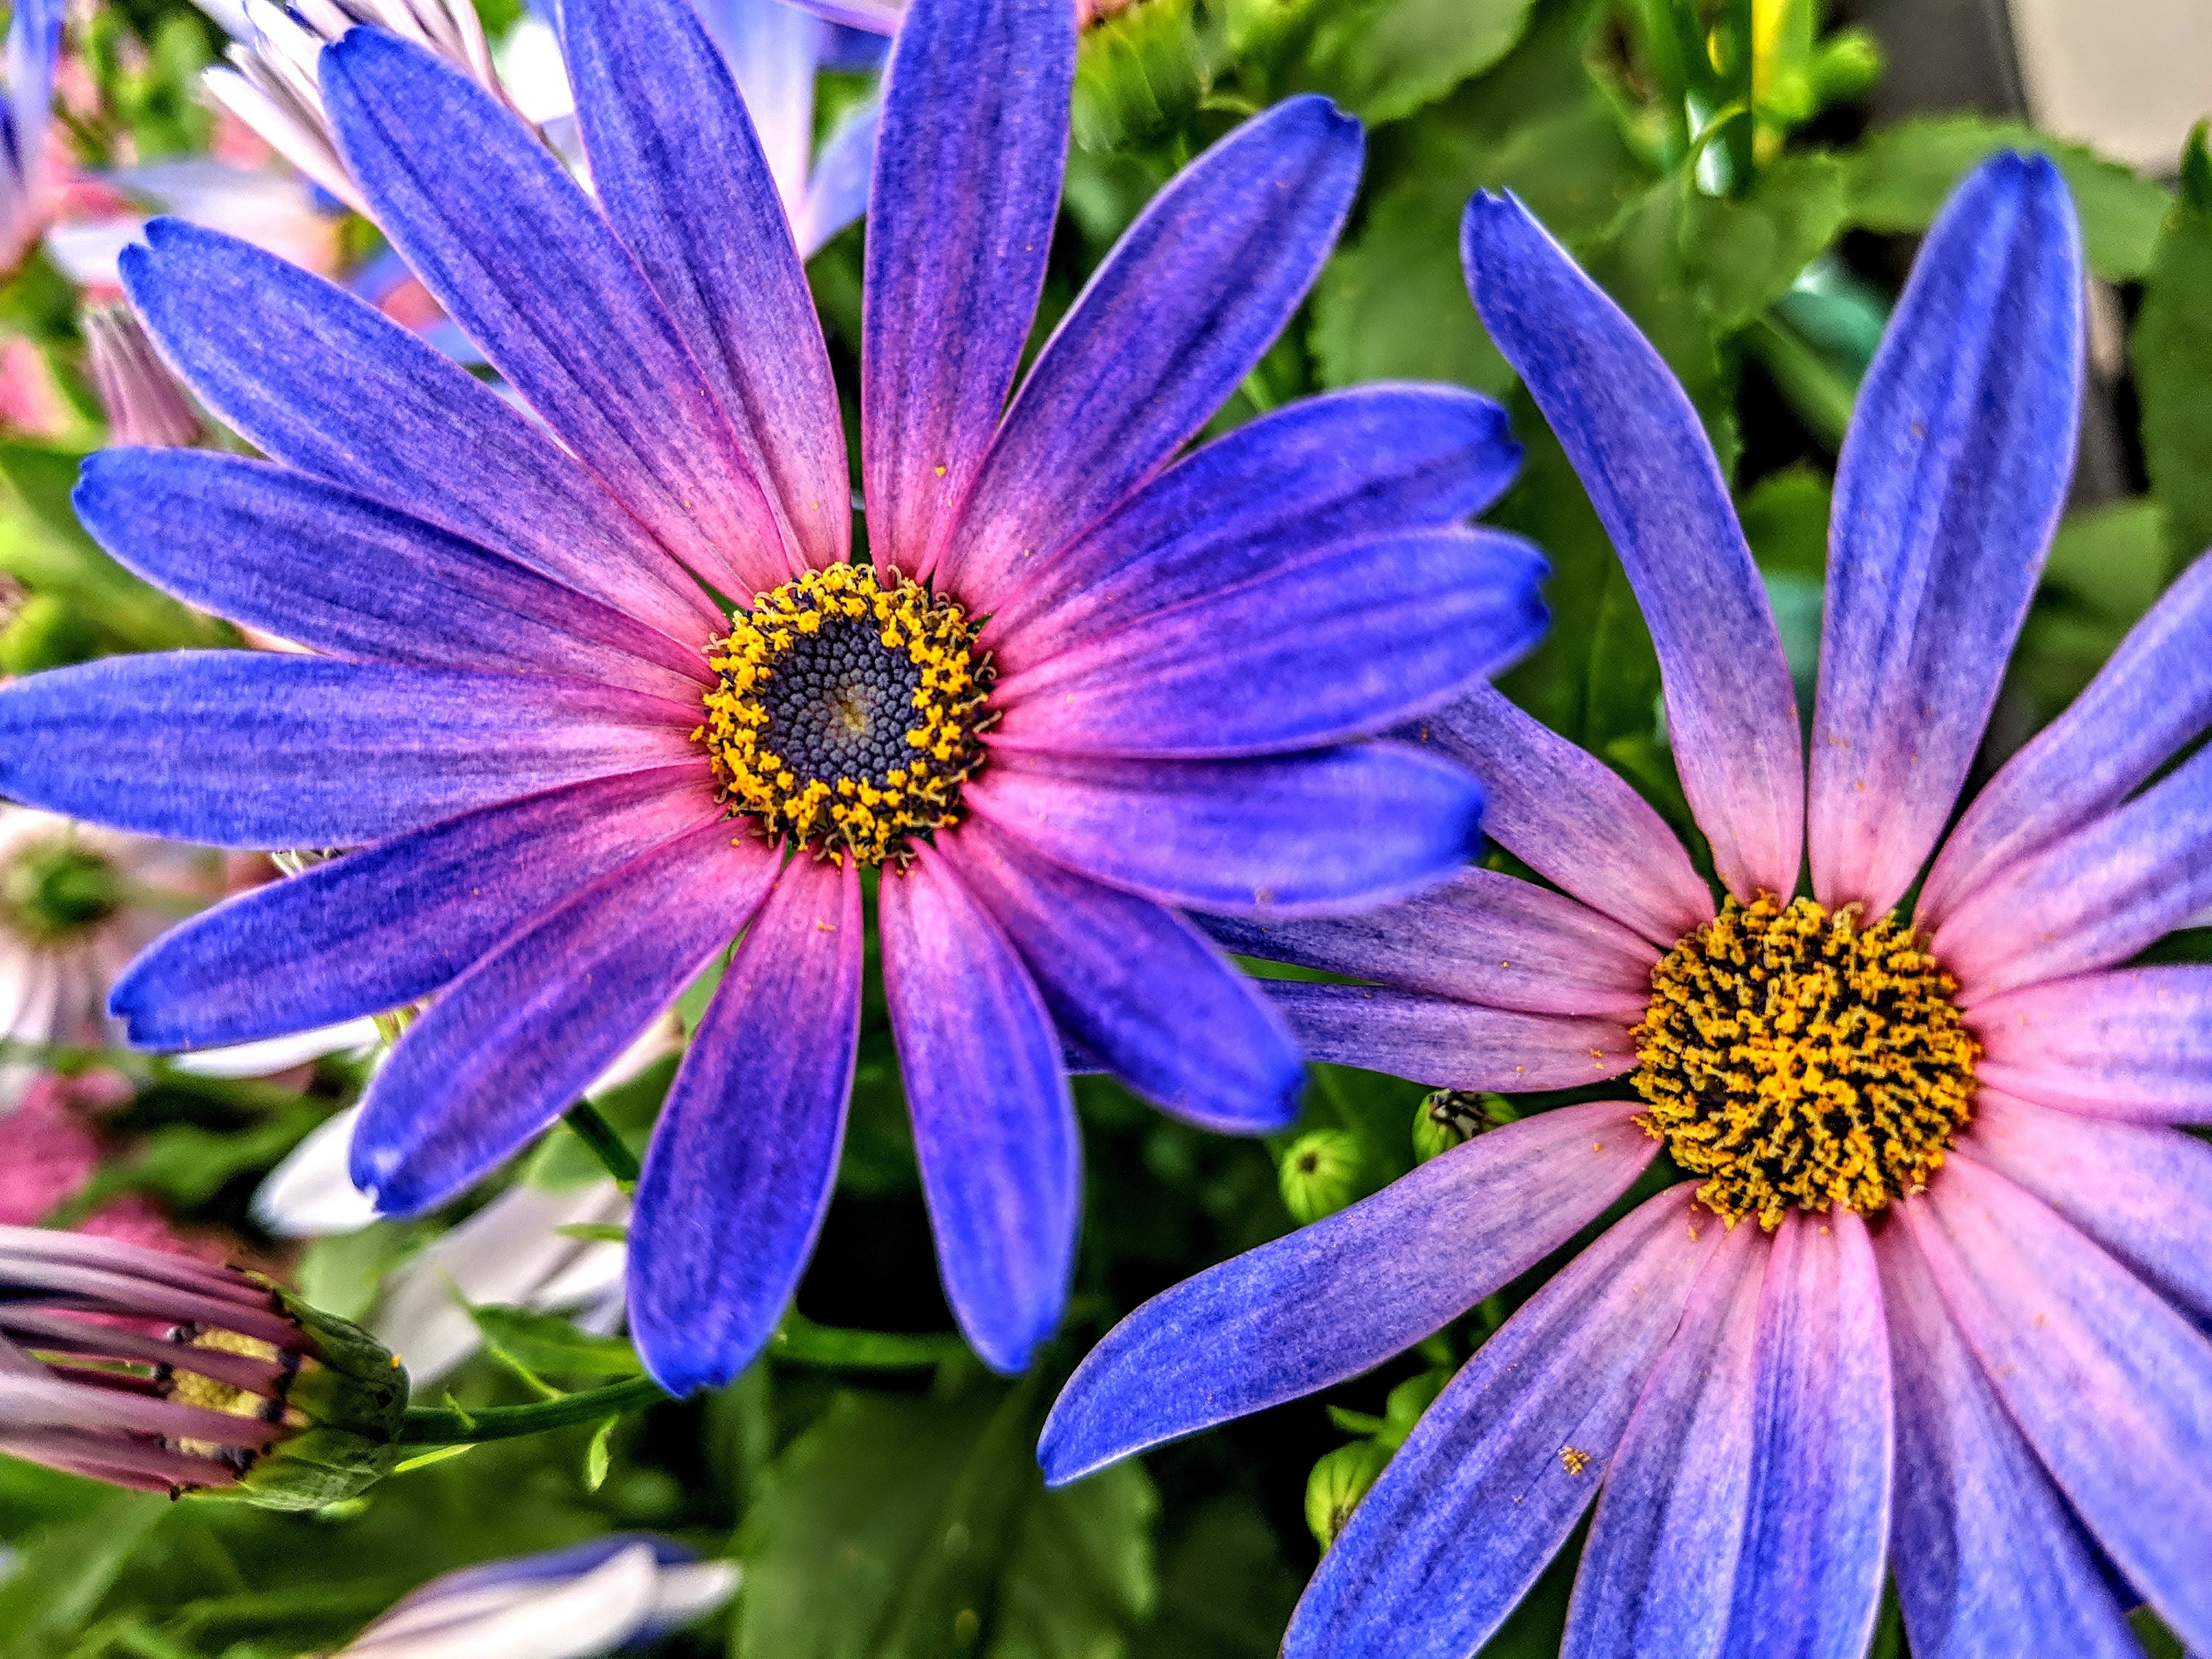 Free stock photo of purple asters